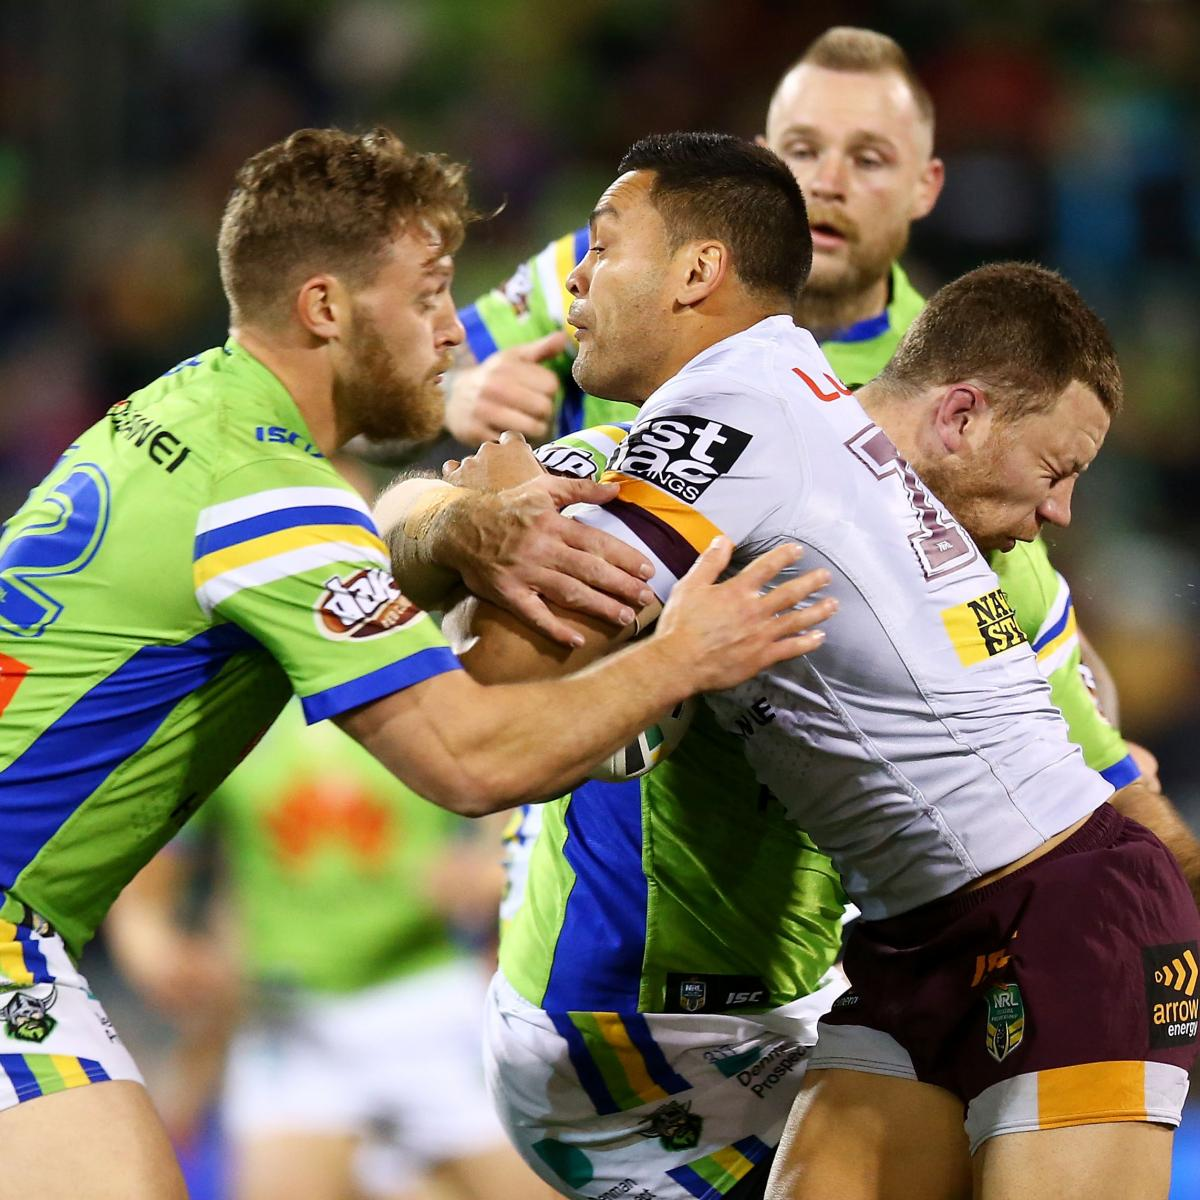 Nrl round 9 2021 betting trends ew betting explained in detail